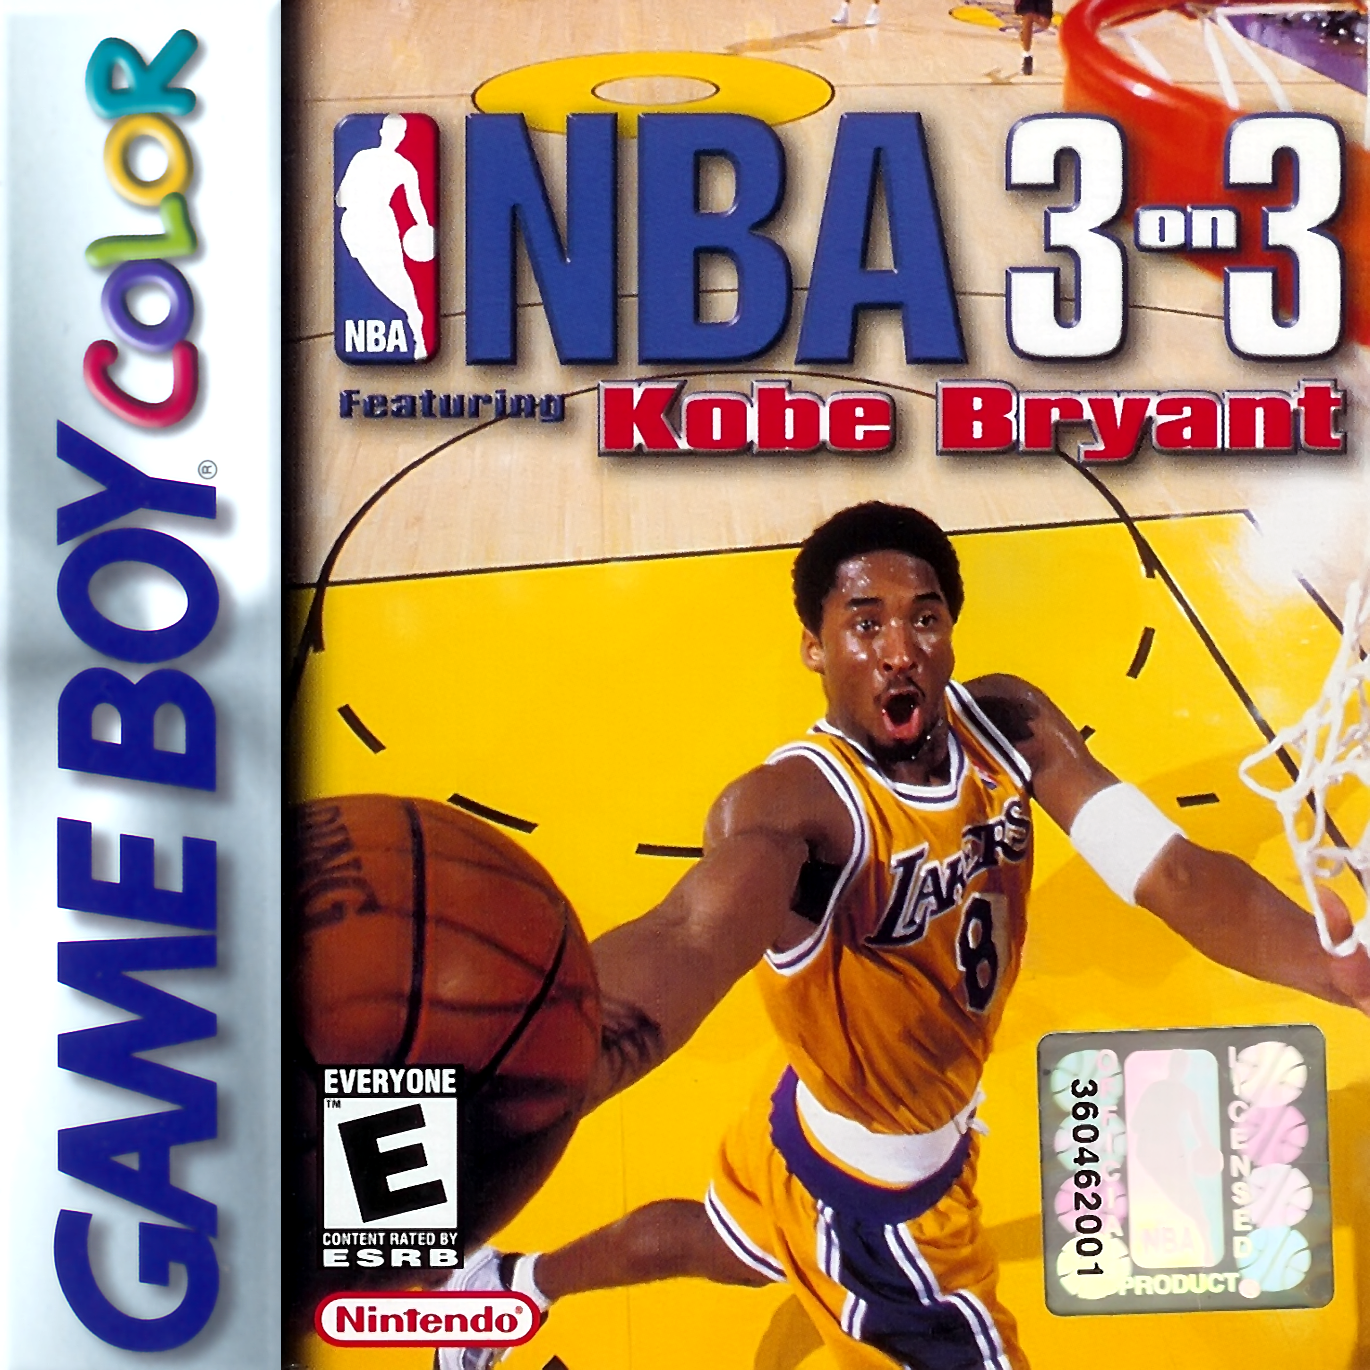 Game boy color online games - Nba 3 On 3 Featuring Kobe Bryant Nintendo Game Boy Color Cover Artwork